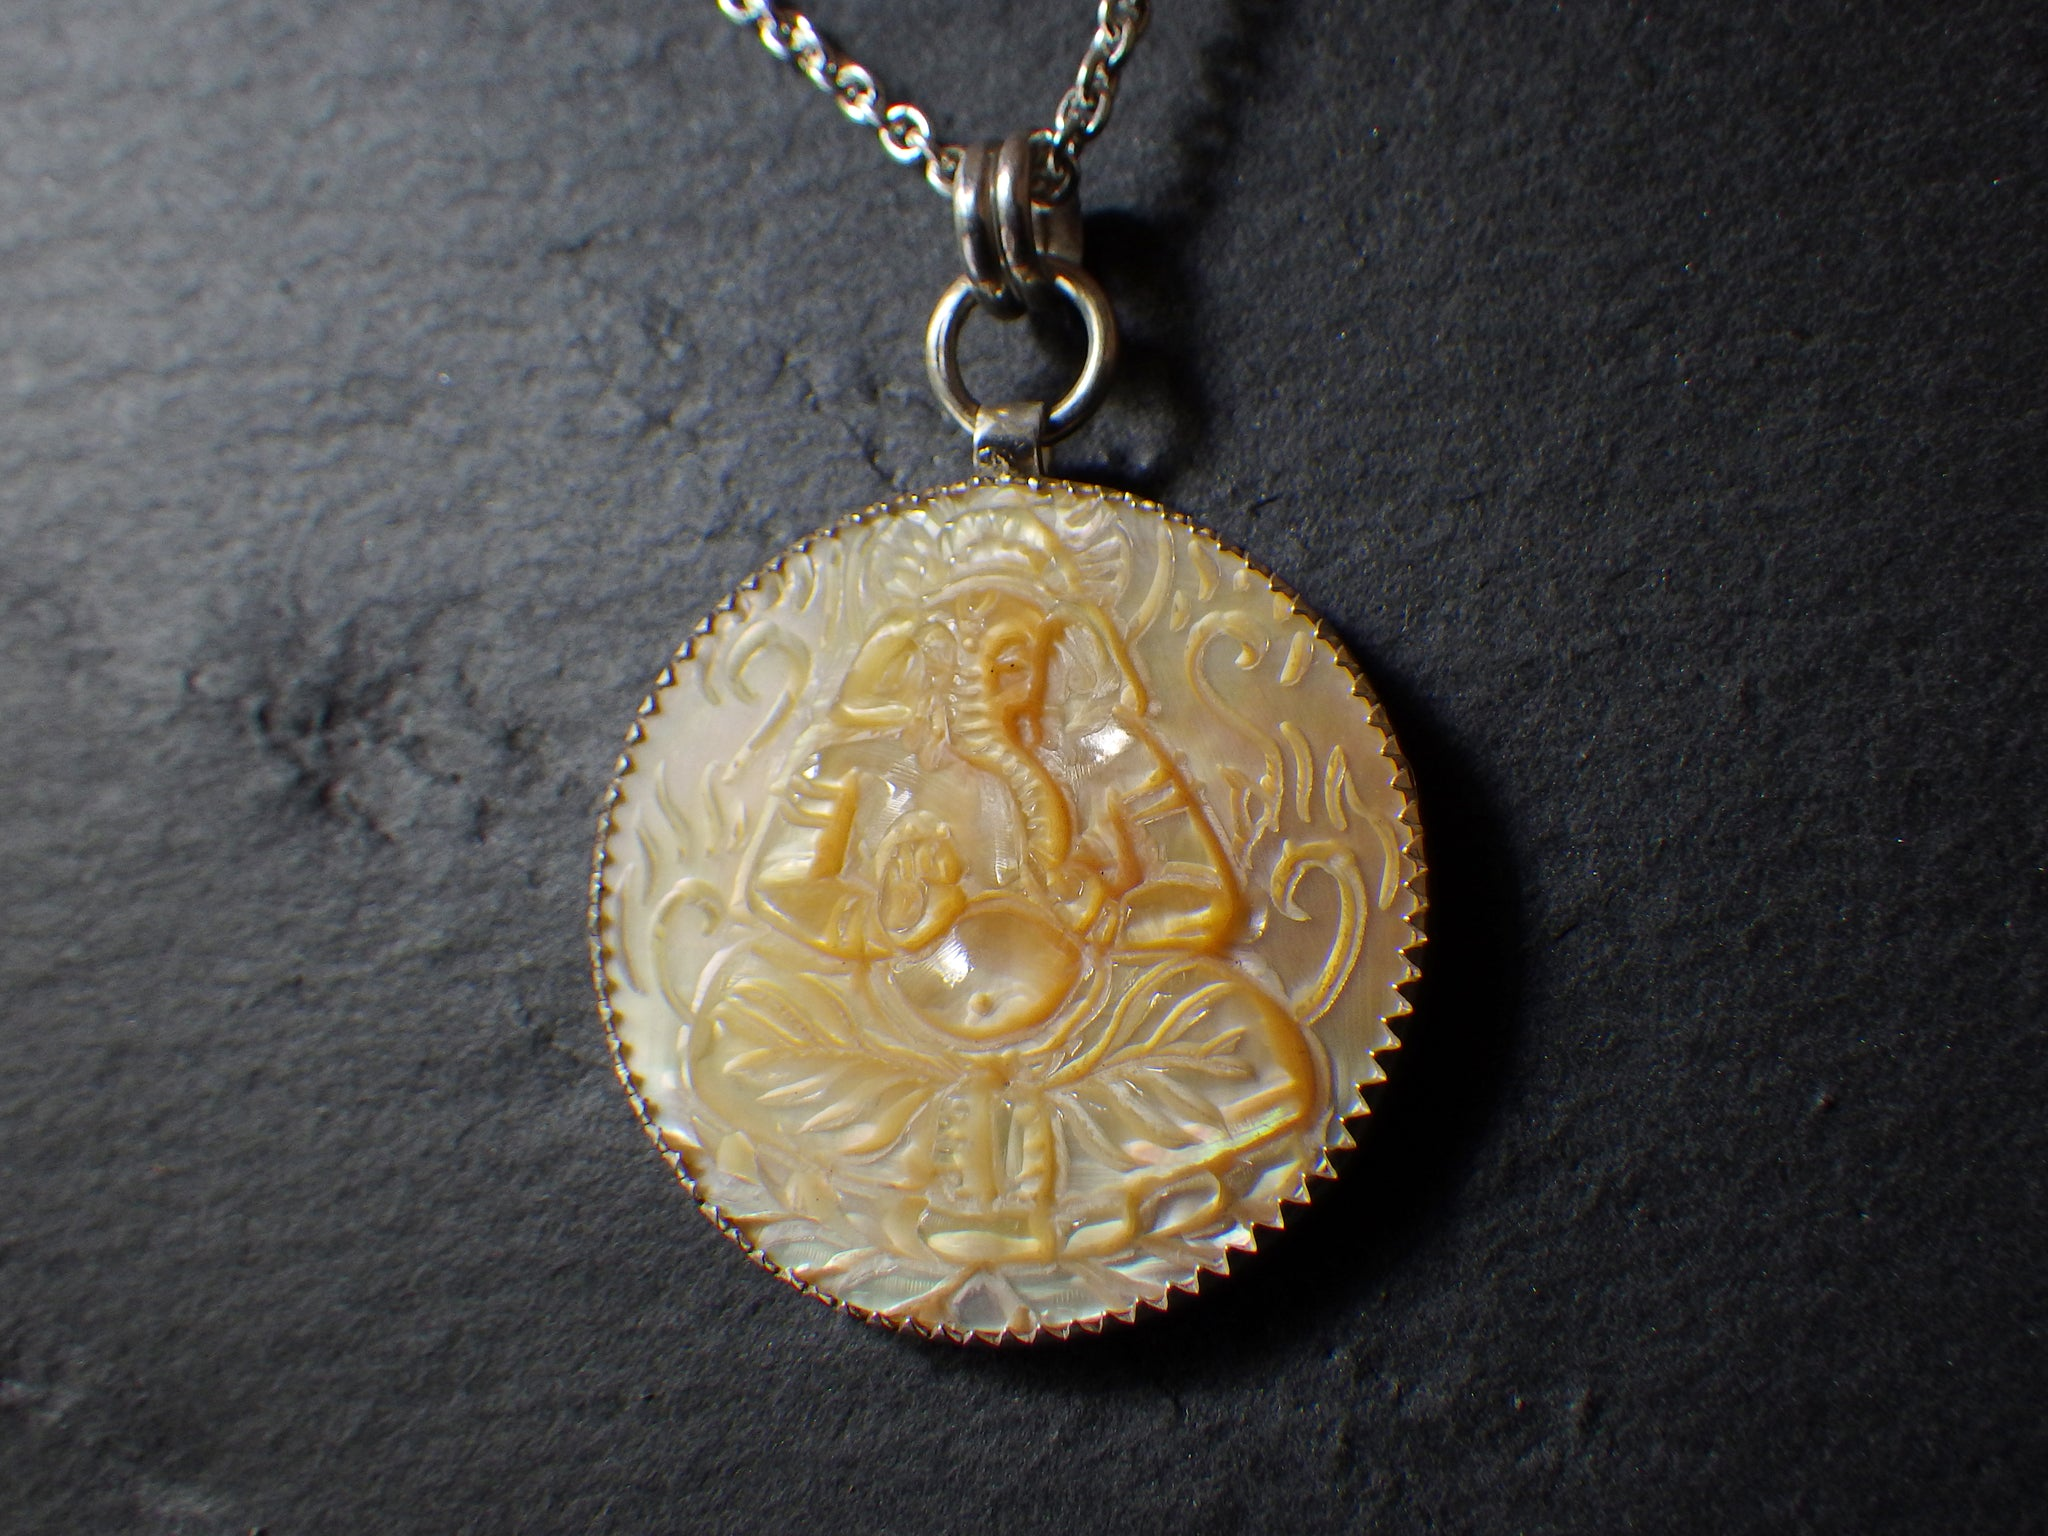 Ganpati Pendant with Mother of Pearl Carving